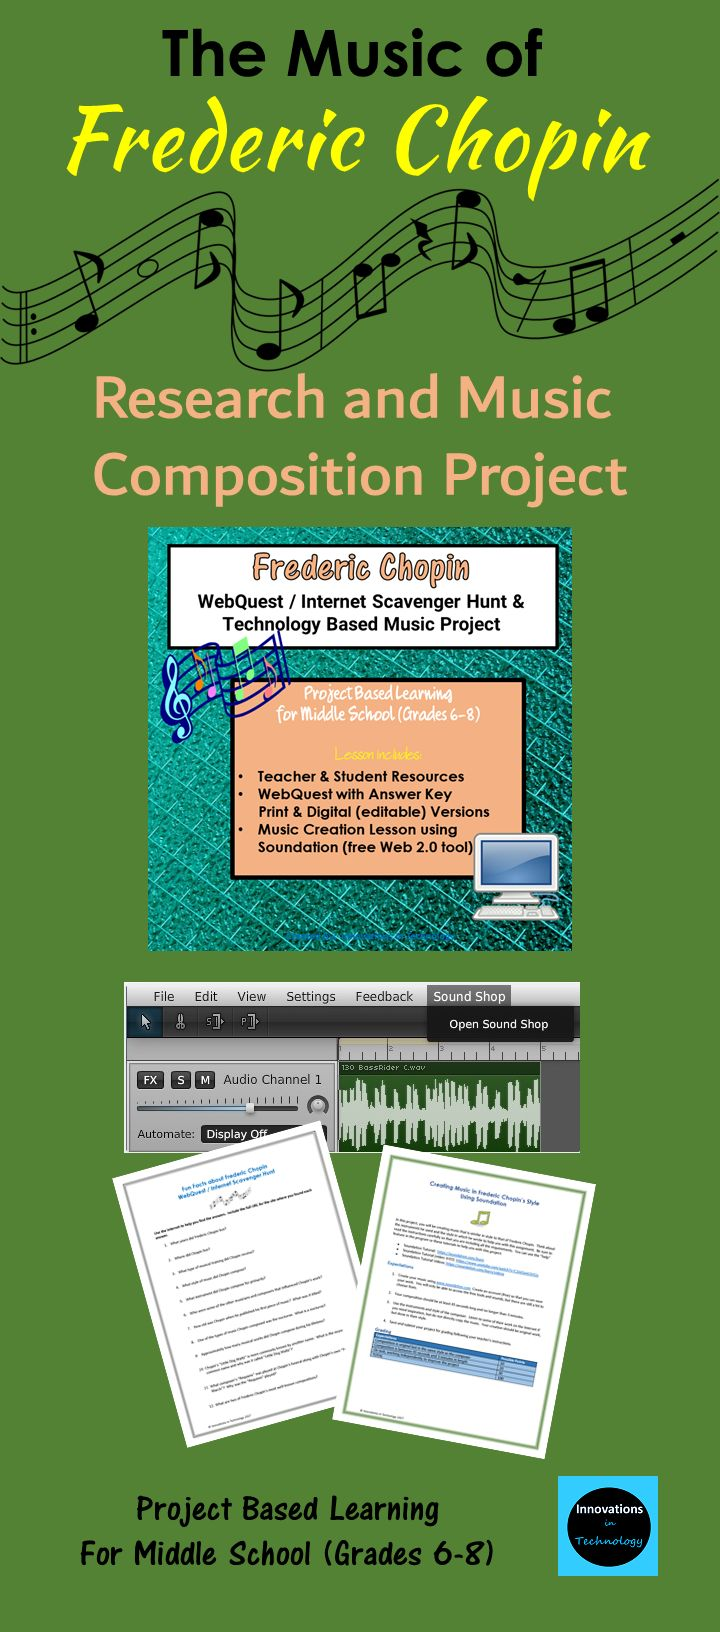 n this lesson, students learn fun facts about Music of Frederic Chopin and his music as they complete a WebQuest (Internet Scavenger Hunt) to answer questions about the topic. Then, they use that knowledge to create a music composition of their own, using Chopin's style, using Soundation, a free Web 2.0 music creation and editing program. Resources, lesson & answer key.